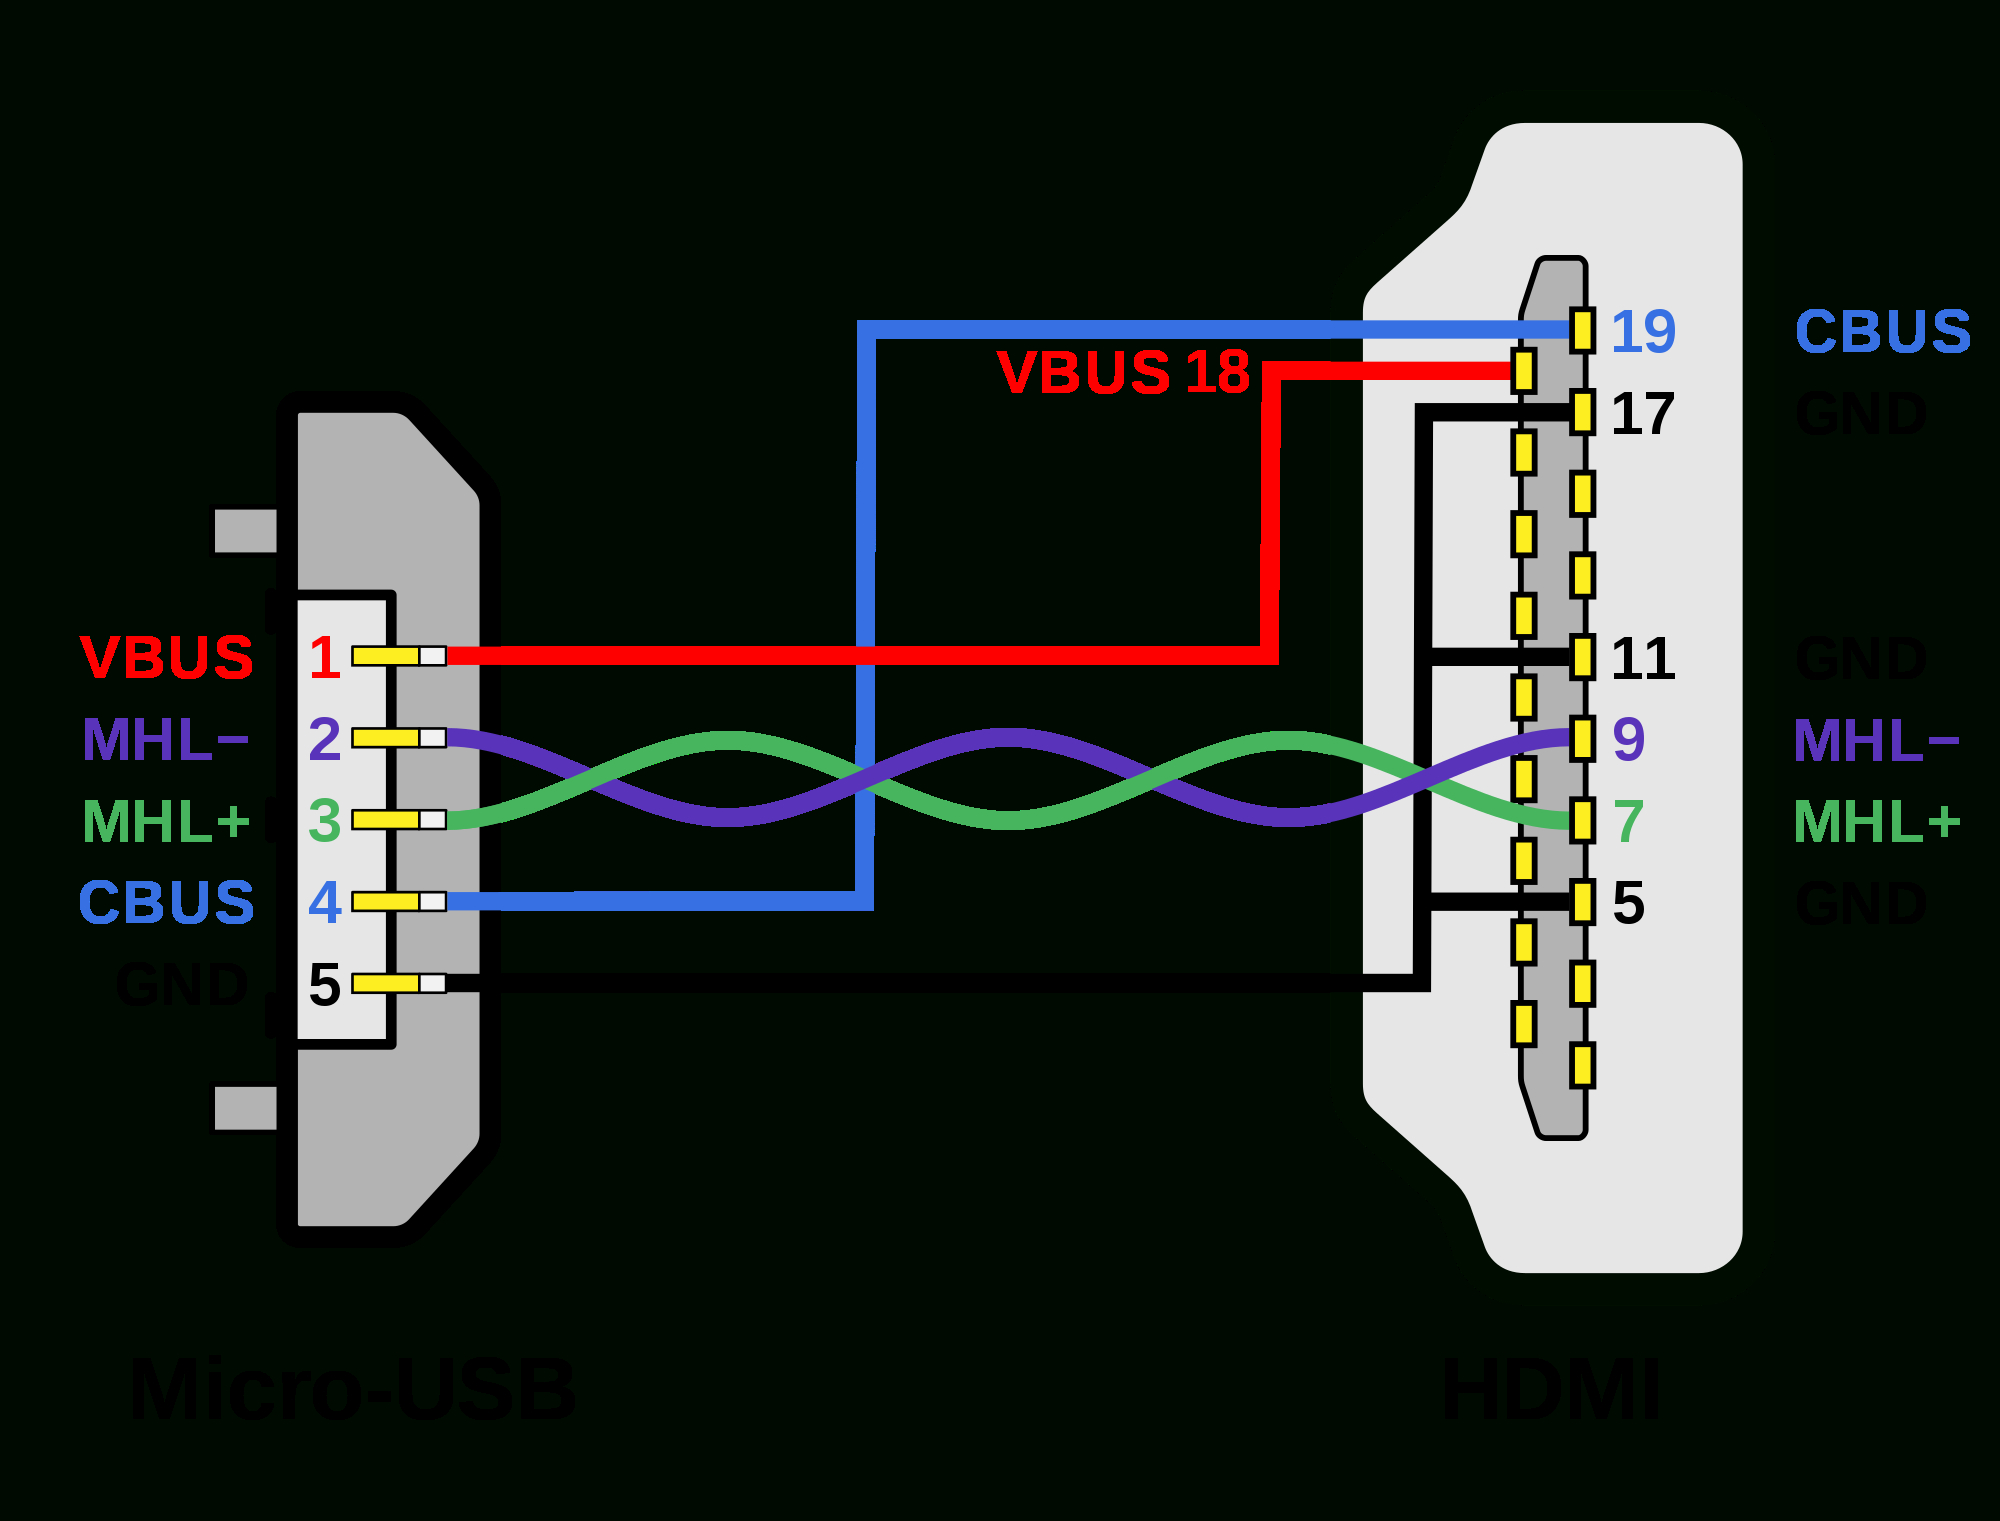 File:mhl Micro-Usb - Hdmi Wiring Diagram.svg - Wikimedia Commons - Wiring Diagram For Micro Usb To Hdmi